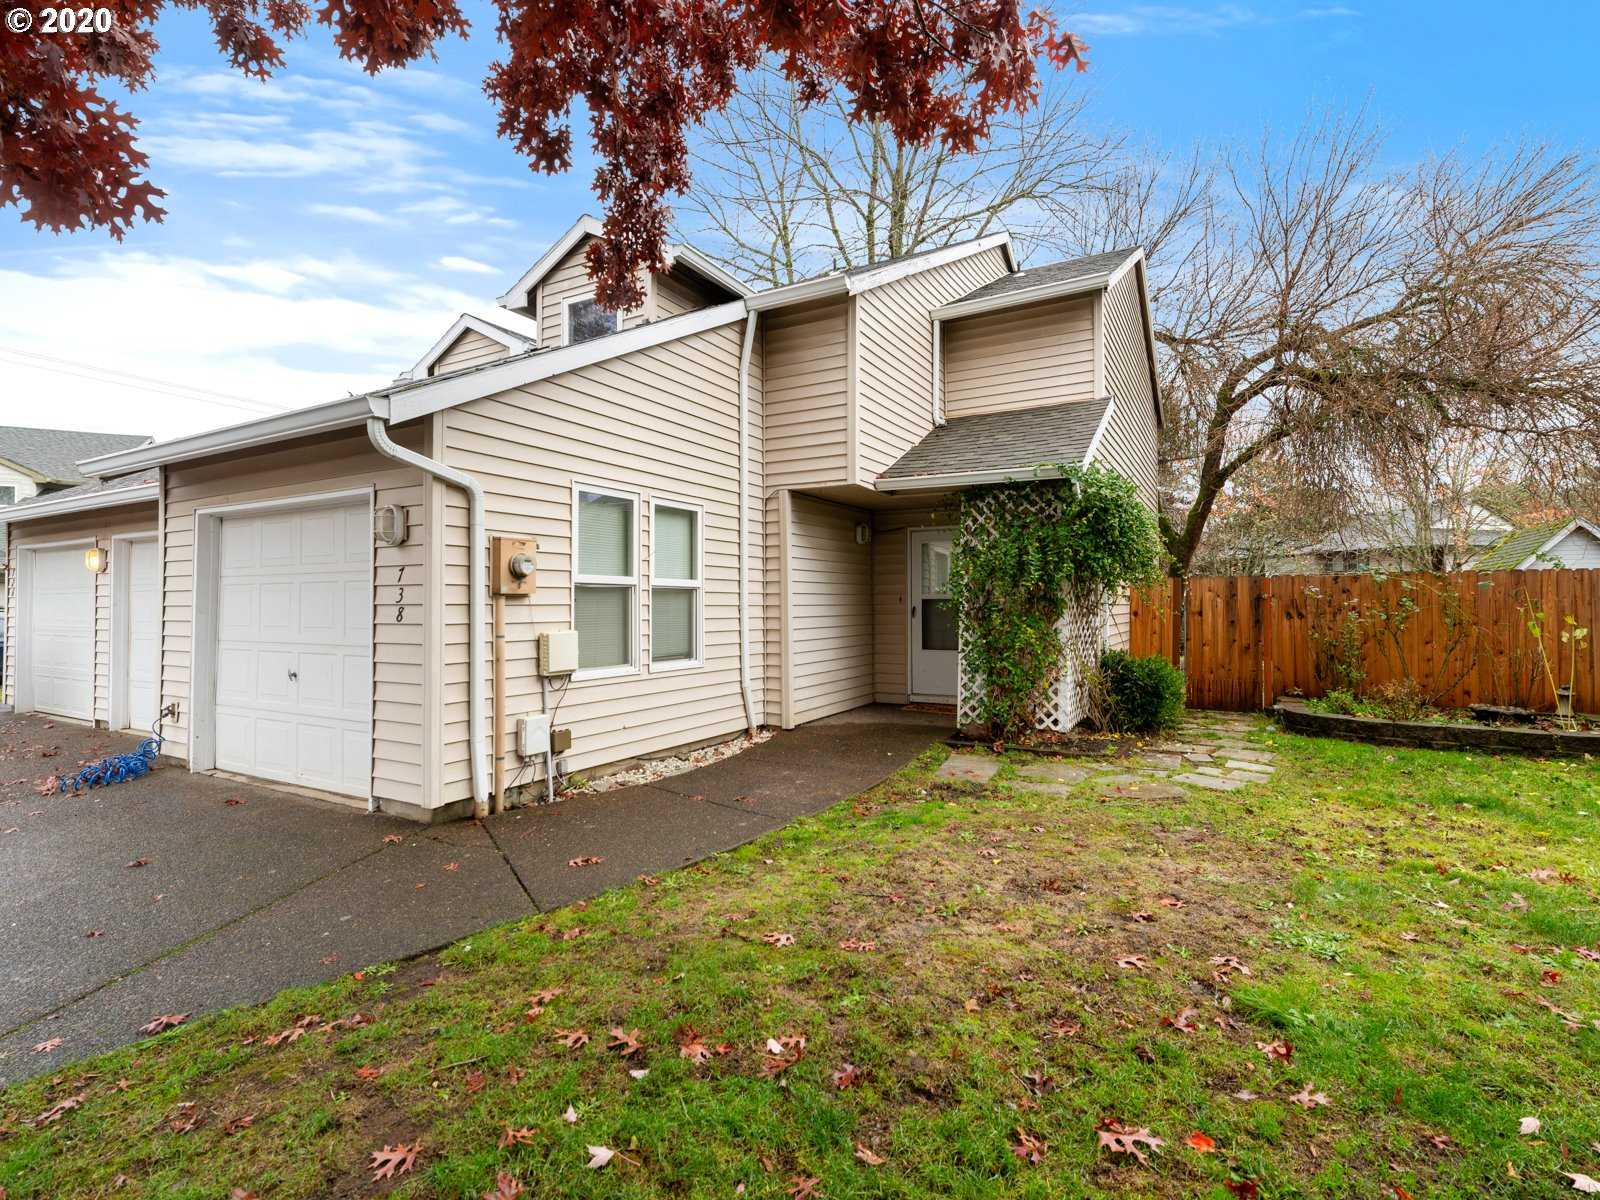 $325,000 - 3Br/2Ba -  for Sale in Beaverton